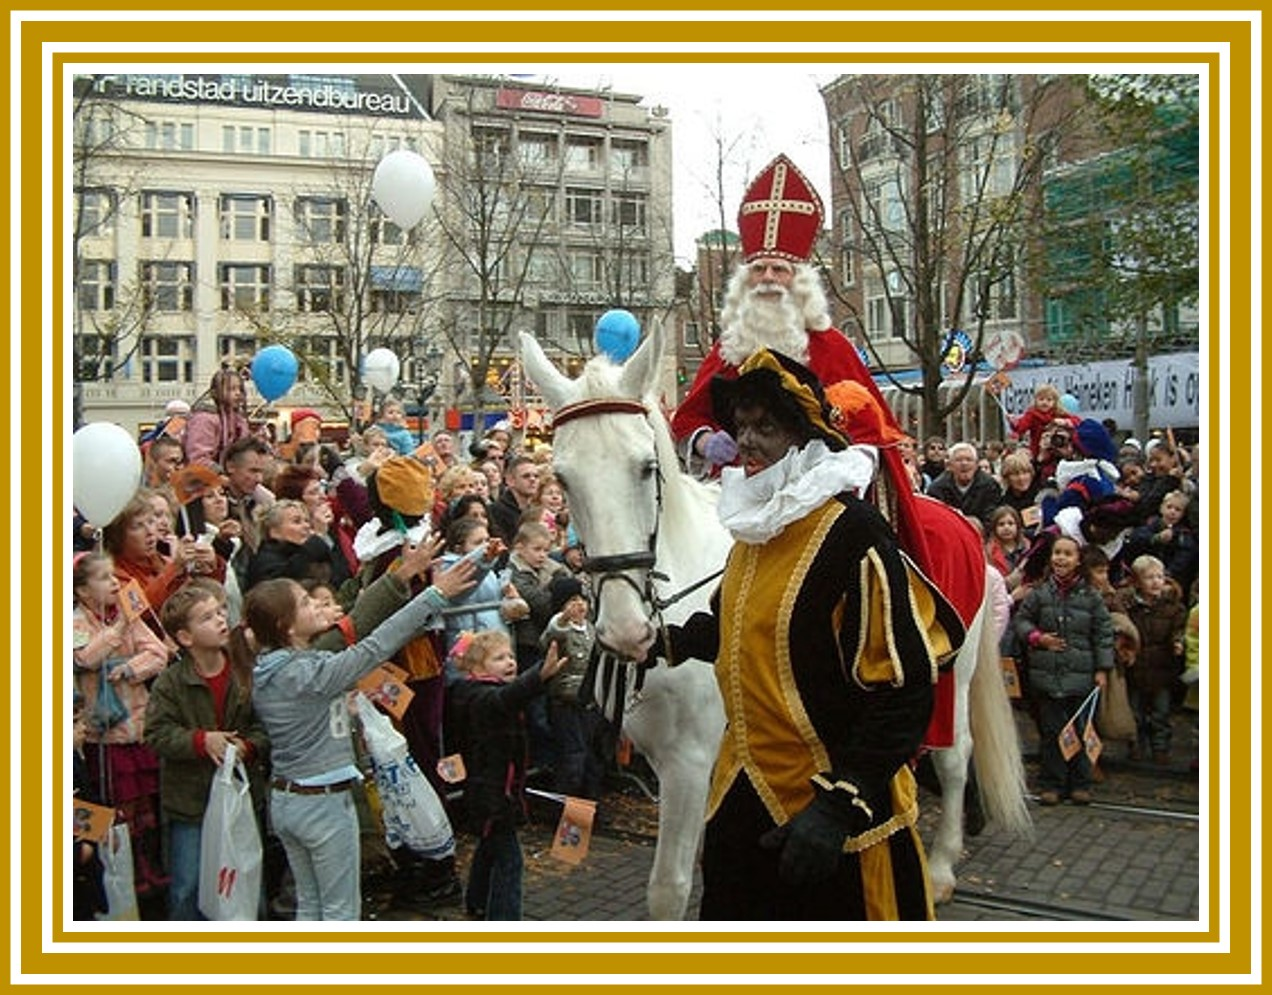 Sinterklaas takes part in a Christmas parade while riding a horse. | OrnamentShop.com